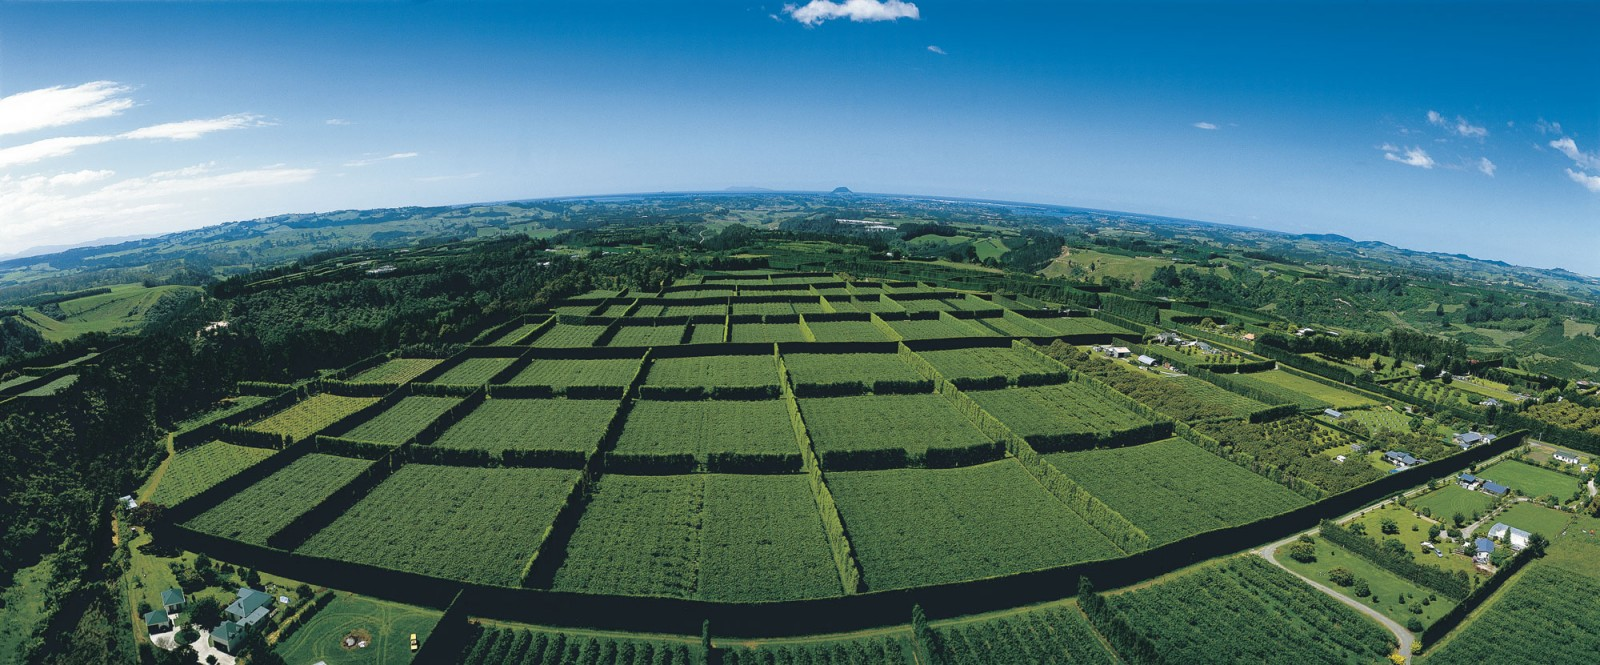 About 6600 ha of the Bay of Plenty looks like this—a green pigeonhole landscape protected by the narrow high shelter belts that characterise kiwifruit orchards. The narrowness is to maximise the area fruit can grow on—a consideration when orchards sell for $250,000–$450,000 per ha. Orchards producing the newer gold fruit fetch higher prices because the fruit sells for more than the green.